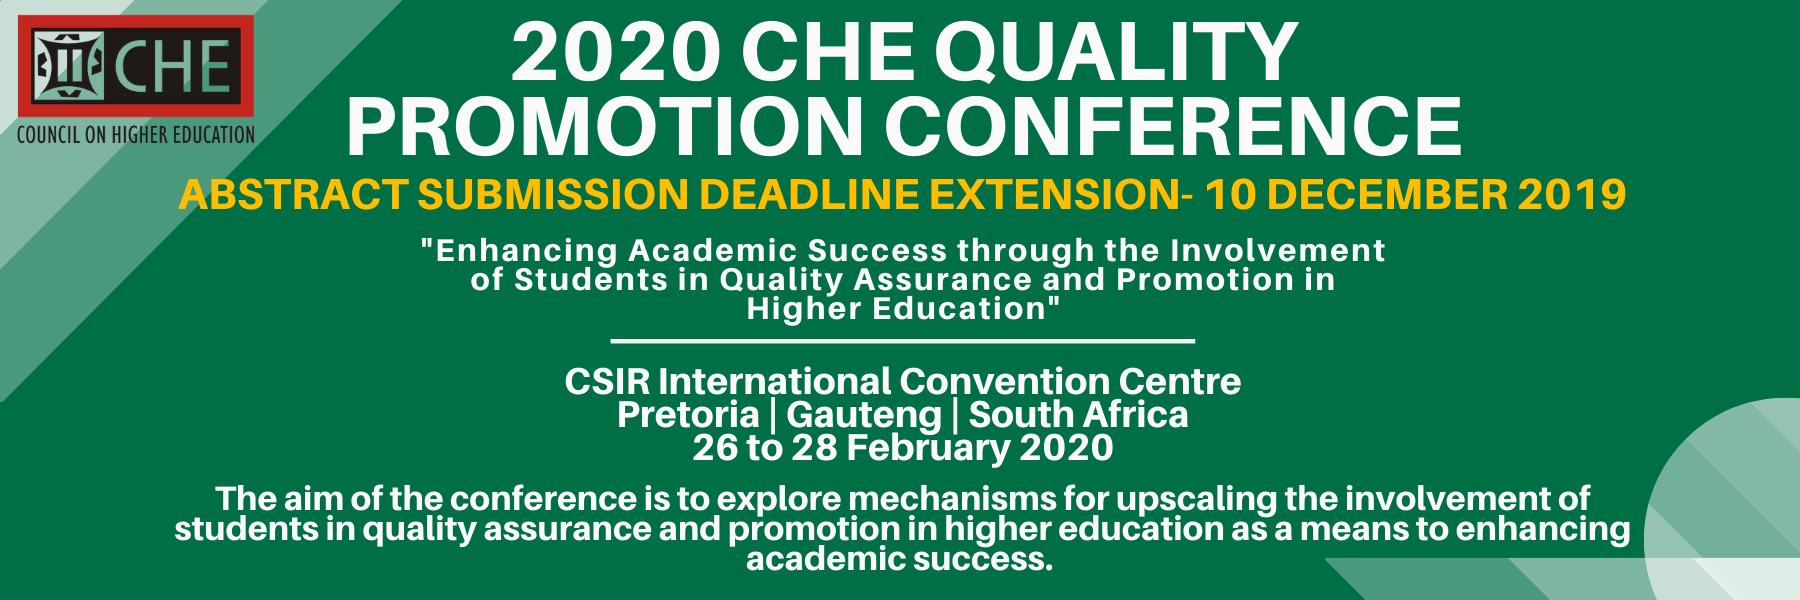 2020 CHE Quality Promotion Conference (2).png